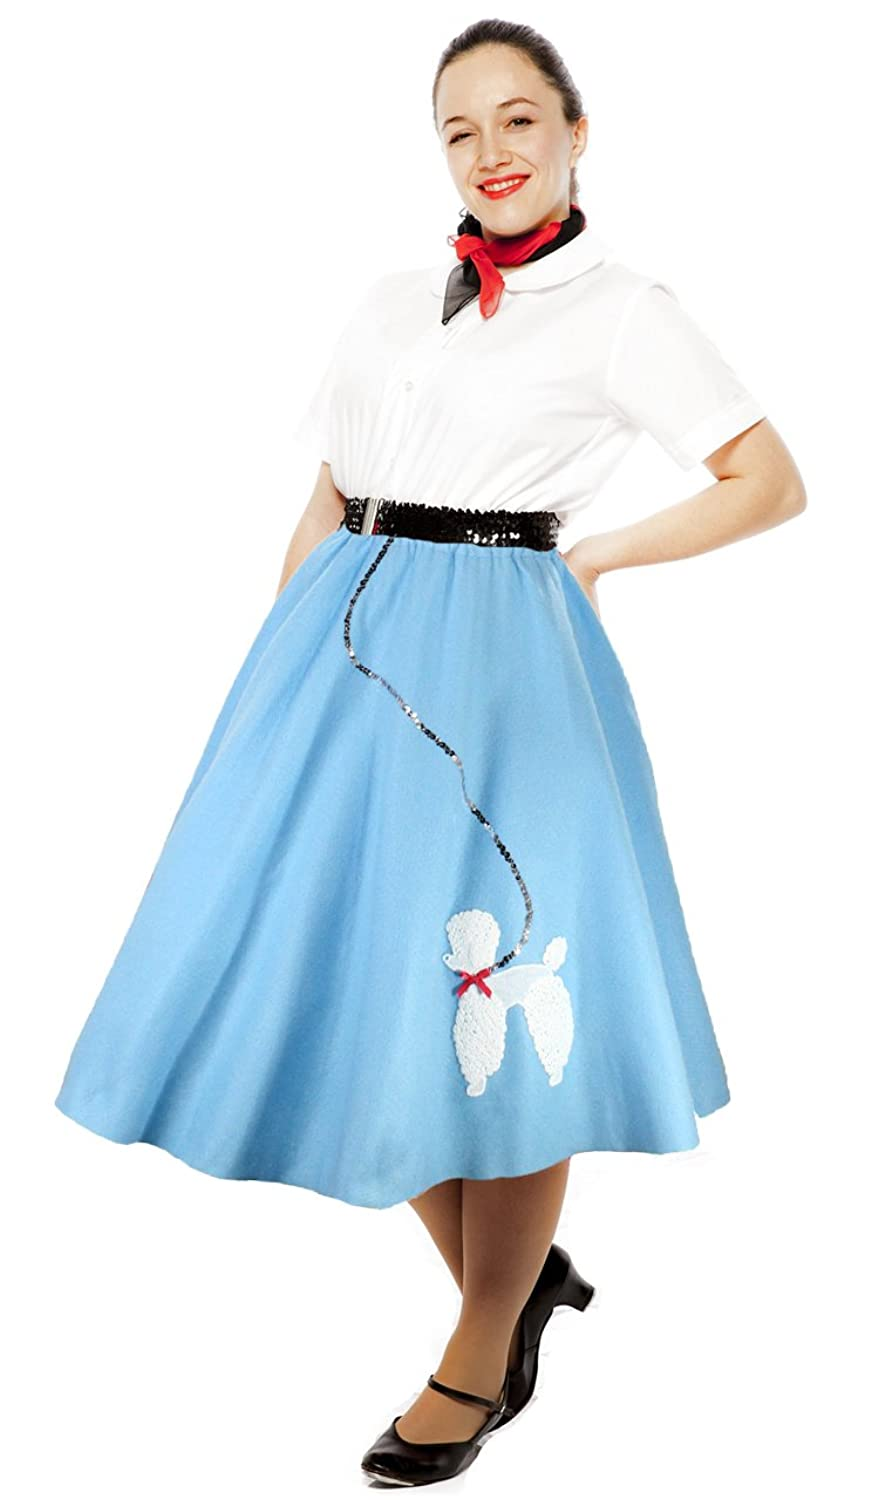 1950s Swing Skirt, Poodle Skirt, Pencil Skirts 50s Felt Poodle Skirt in Retro Colors - size Adult Medium / Large by Hey Viv ! $34.50 AT vintagedancer.com